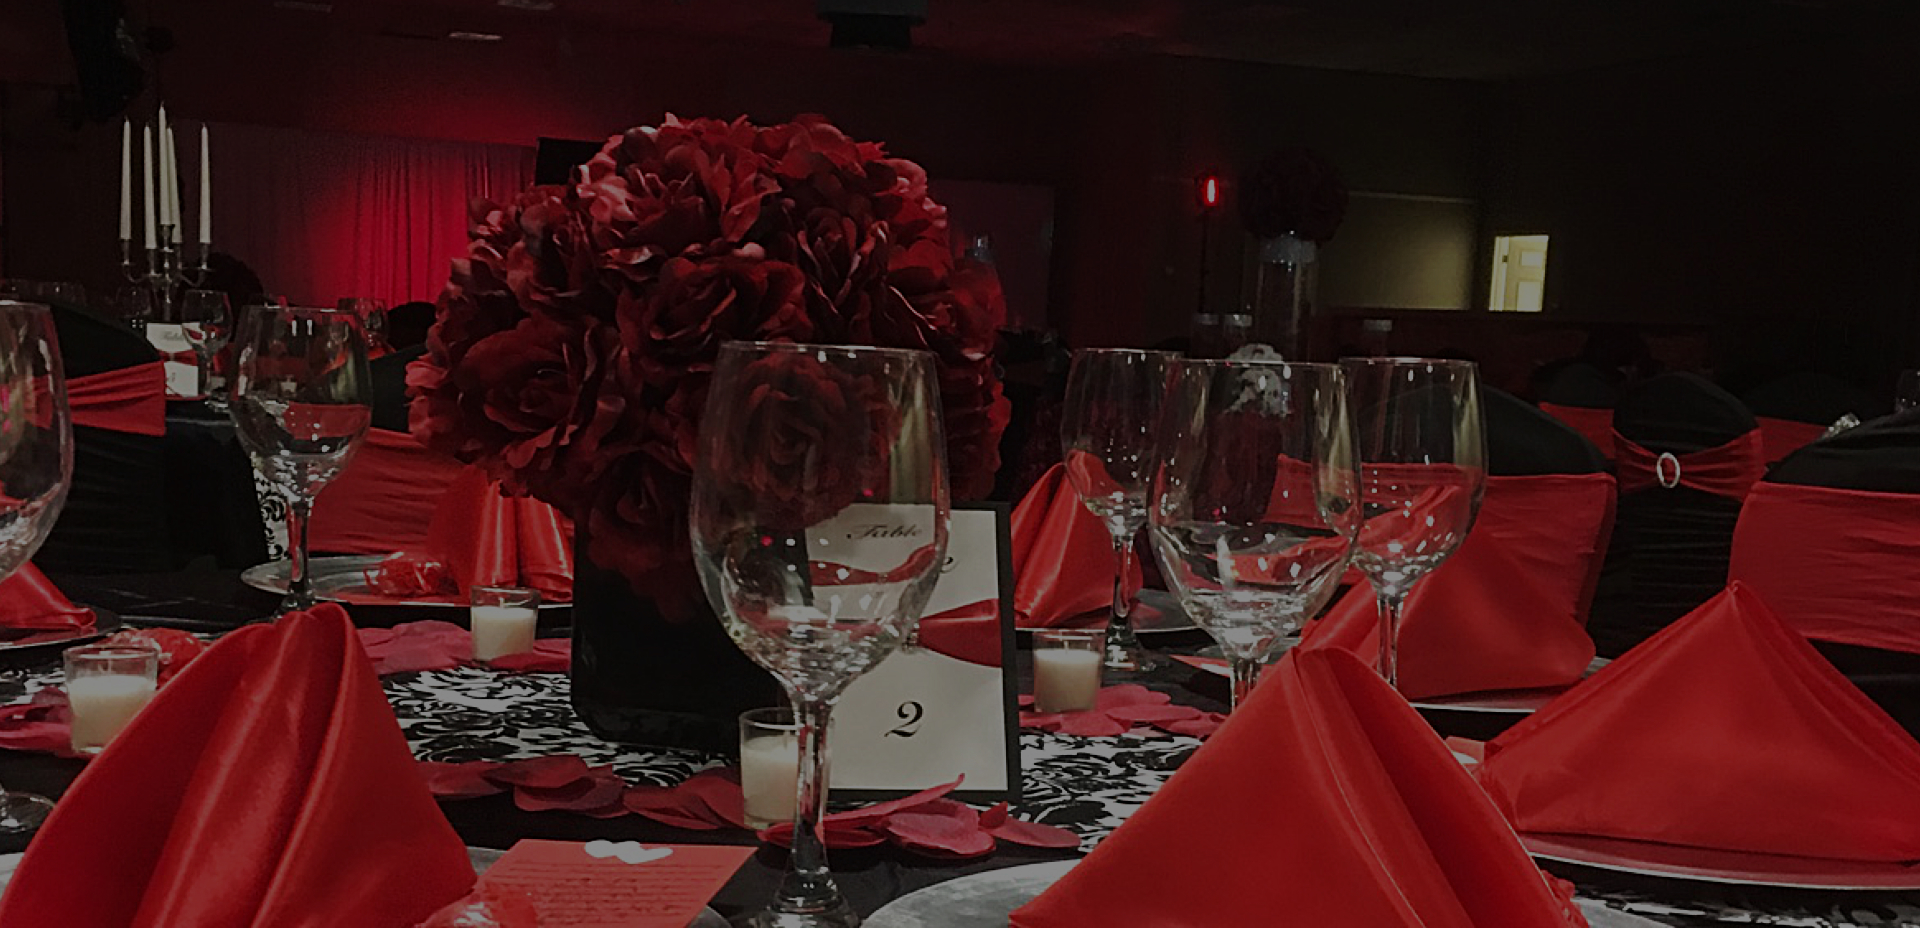 Event reception with red motif